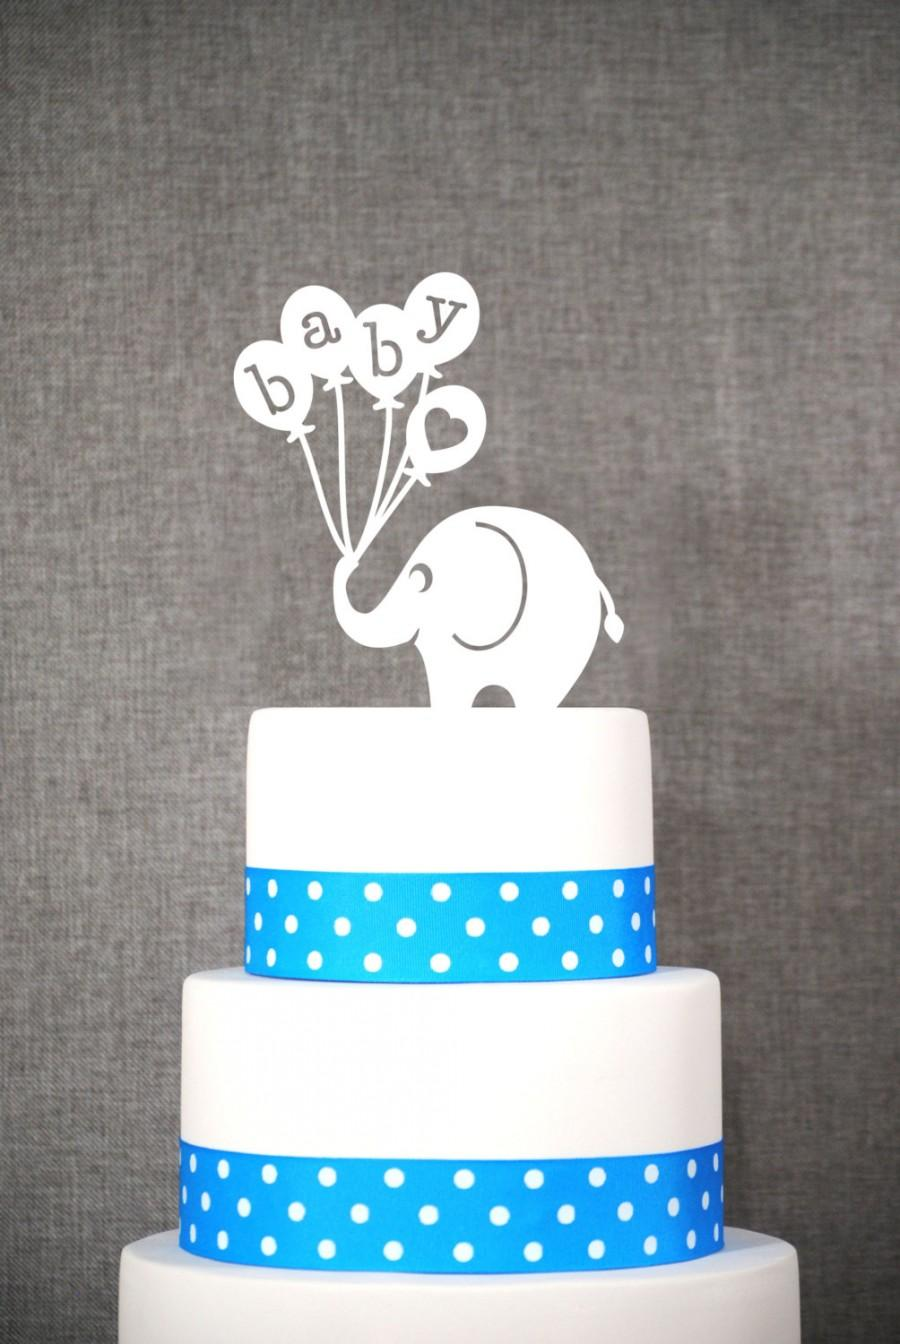 Wedding - Baby Elephant Cake Topper, Fun Baby Shower Topper, Classic Baby Cake Topper- (S191)